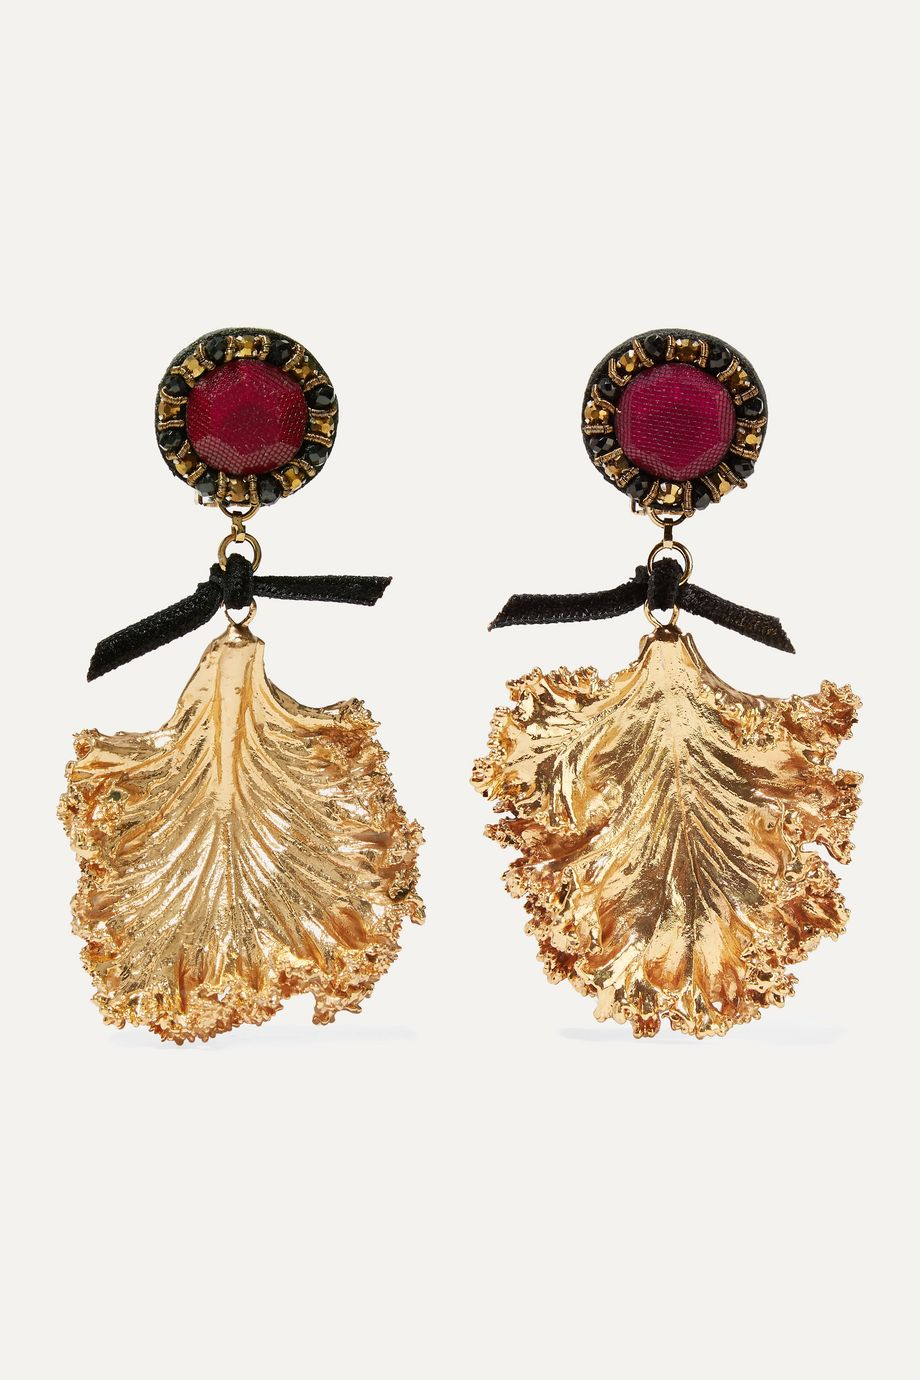 Ranjana Khan Gold-plated, crystal, tulle and leather clip earrings